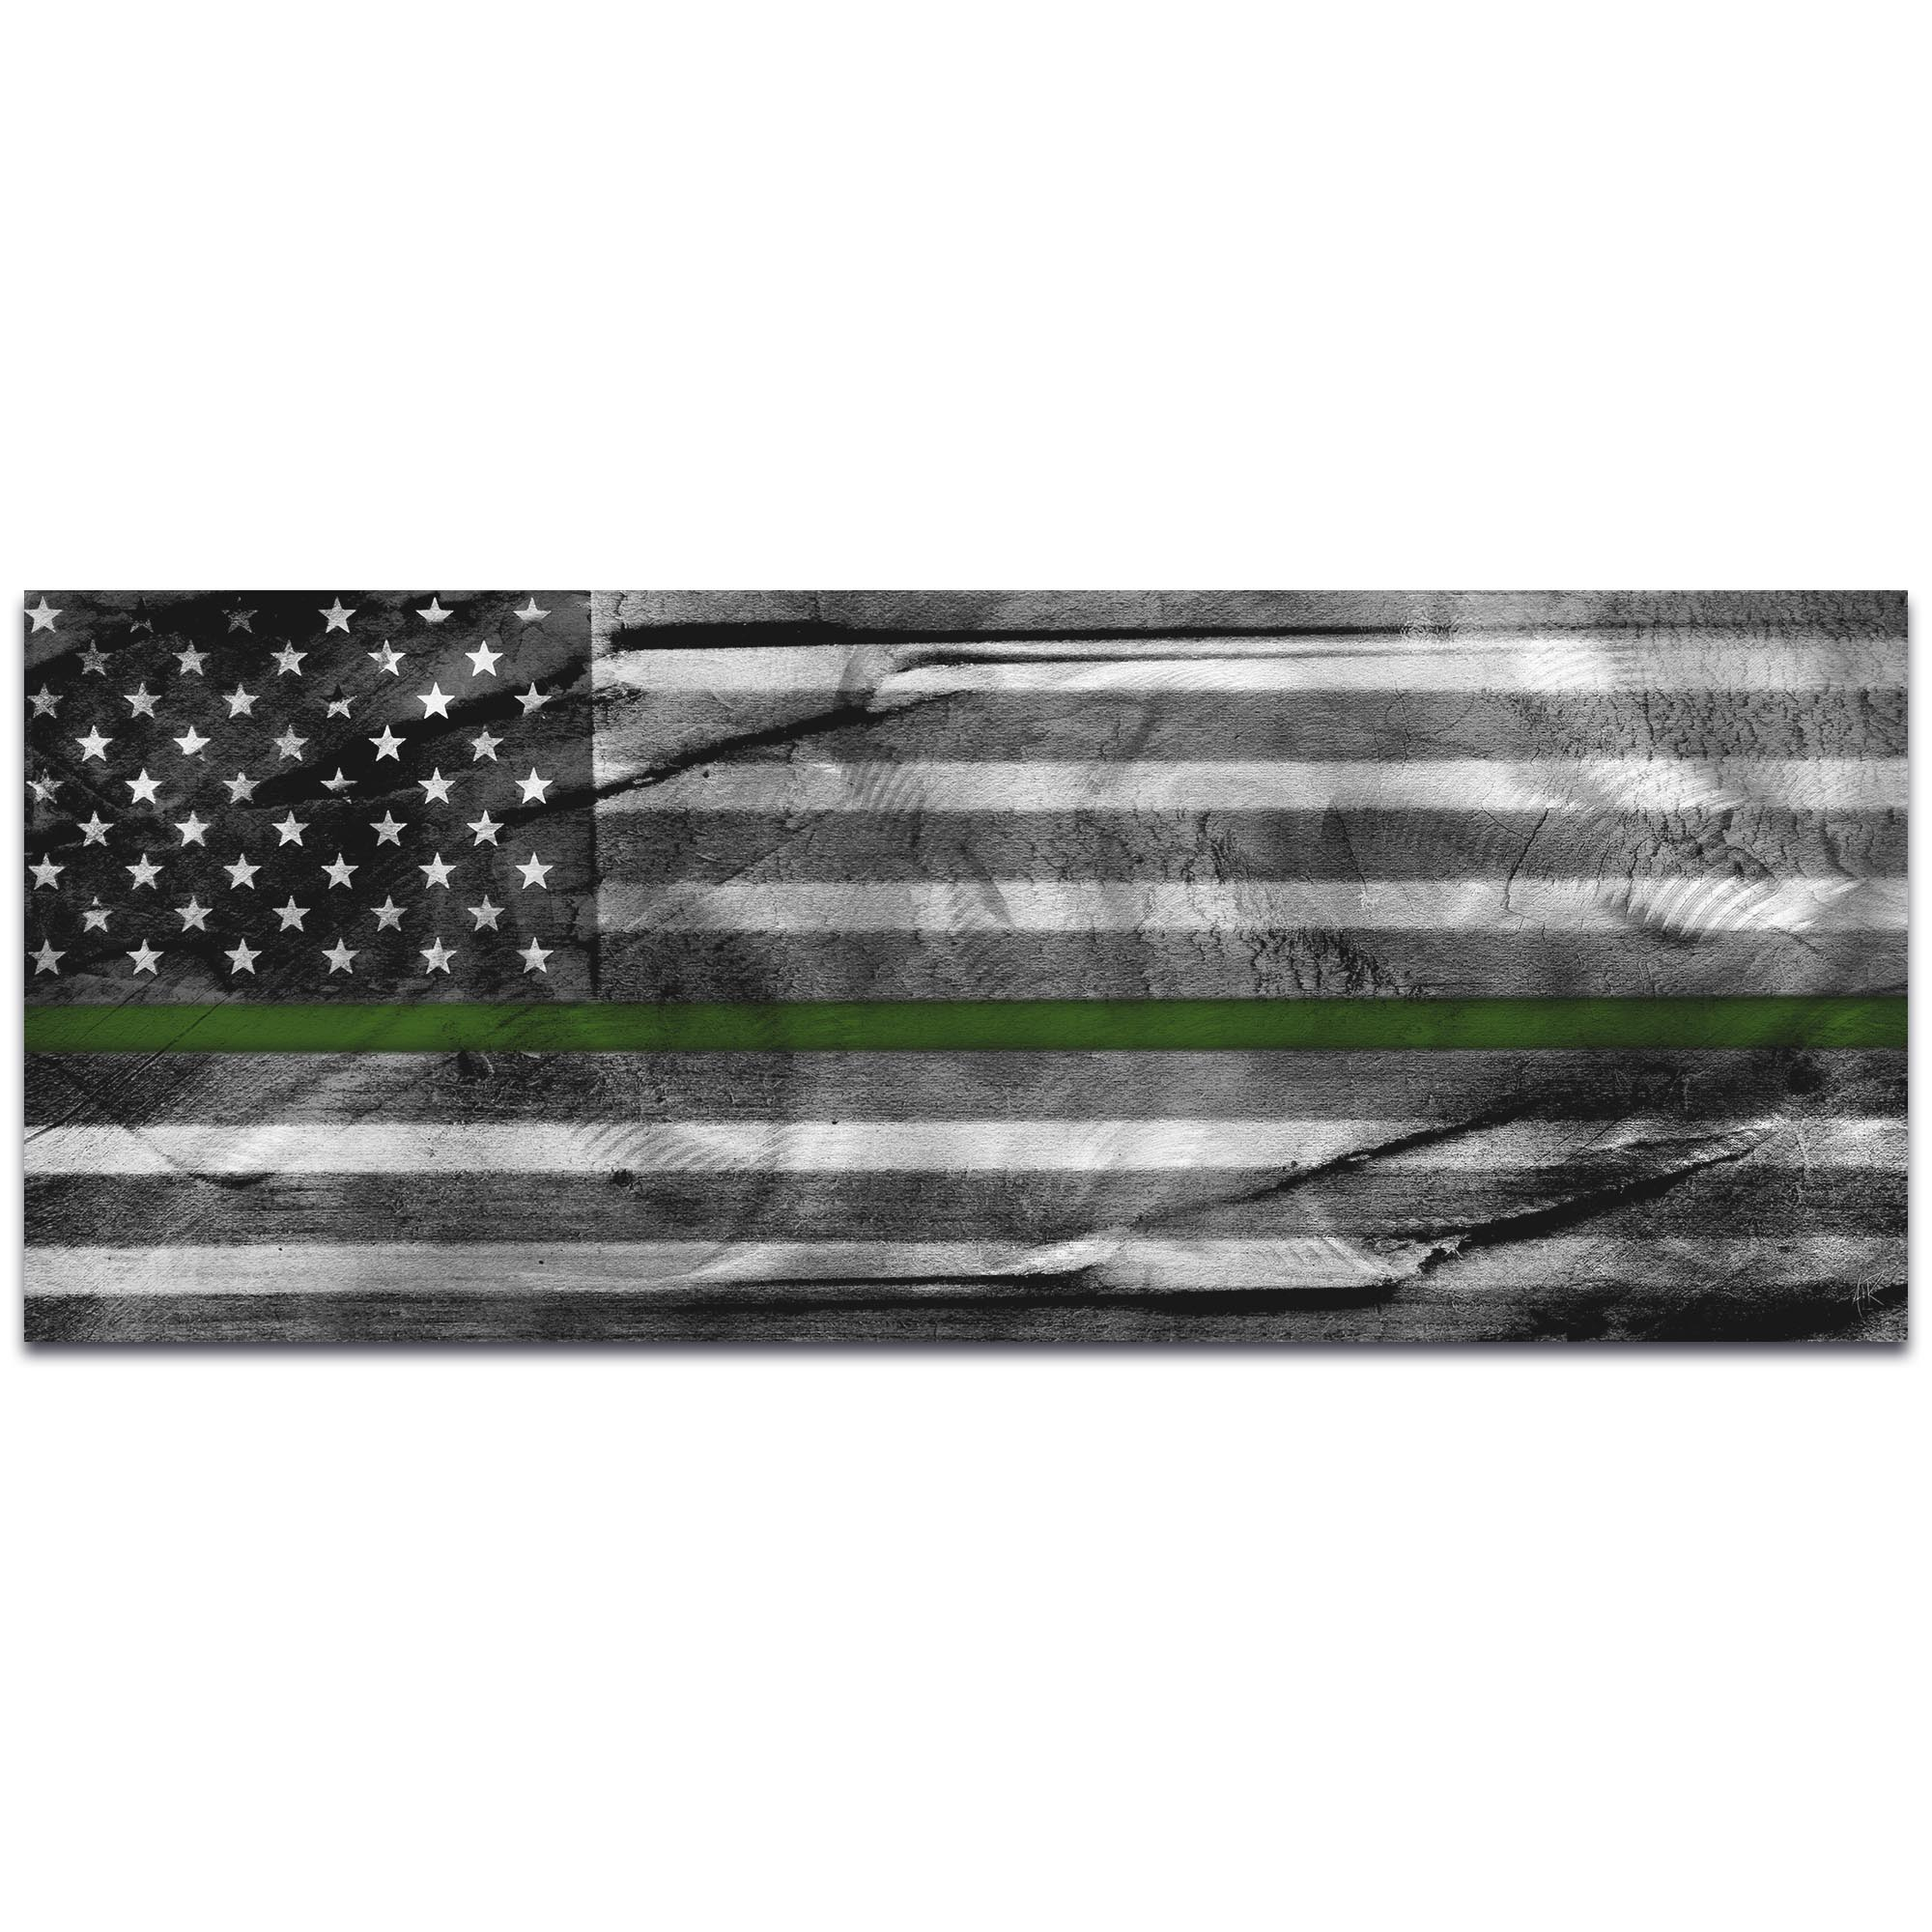 Armed Forces Flag 'American Glory Military Tribute' - US Military Art on Metal or Acrylic